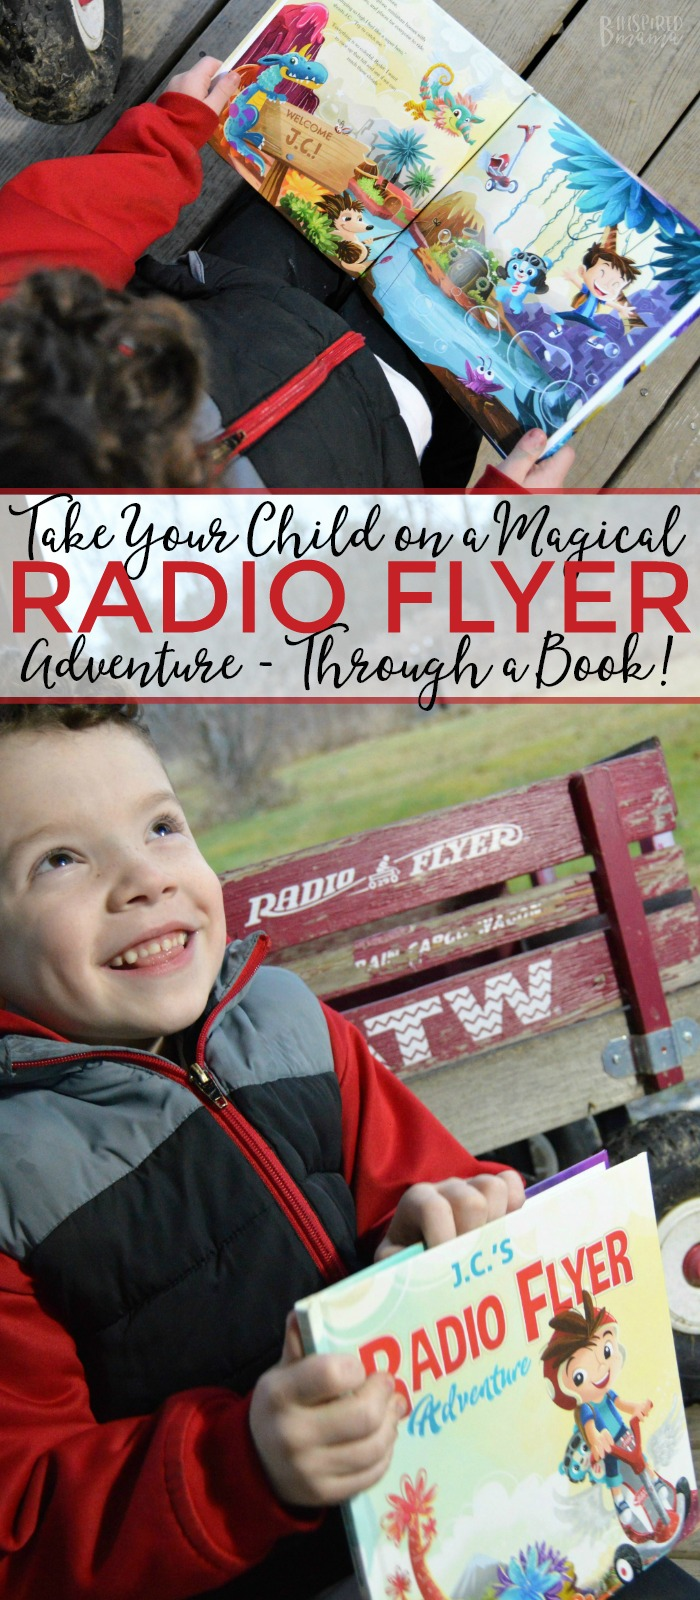 Take Your Child on a Magical Radio Flyer Adventure - Through a Book! - at B-Inspired Mama